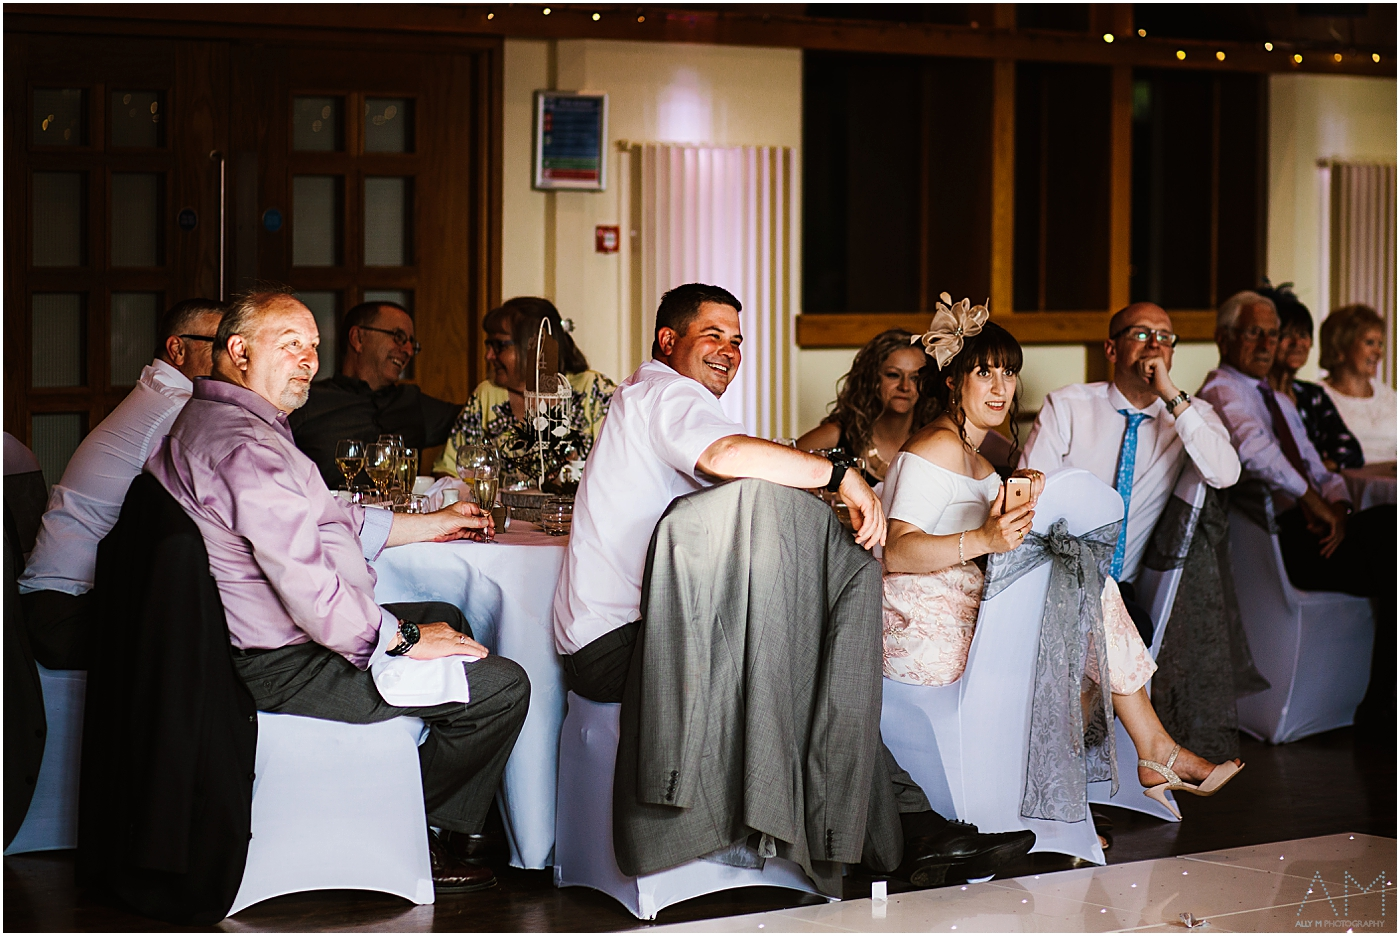 Wedding guests smiling during speeches